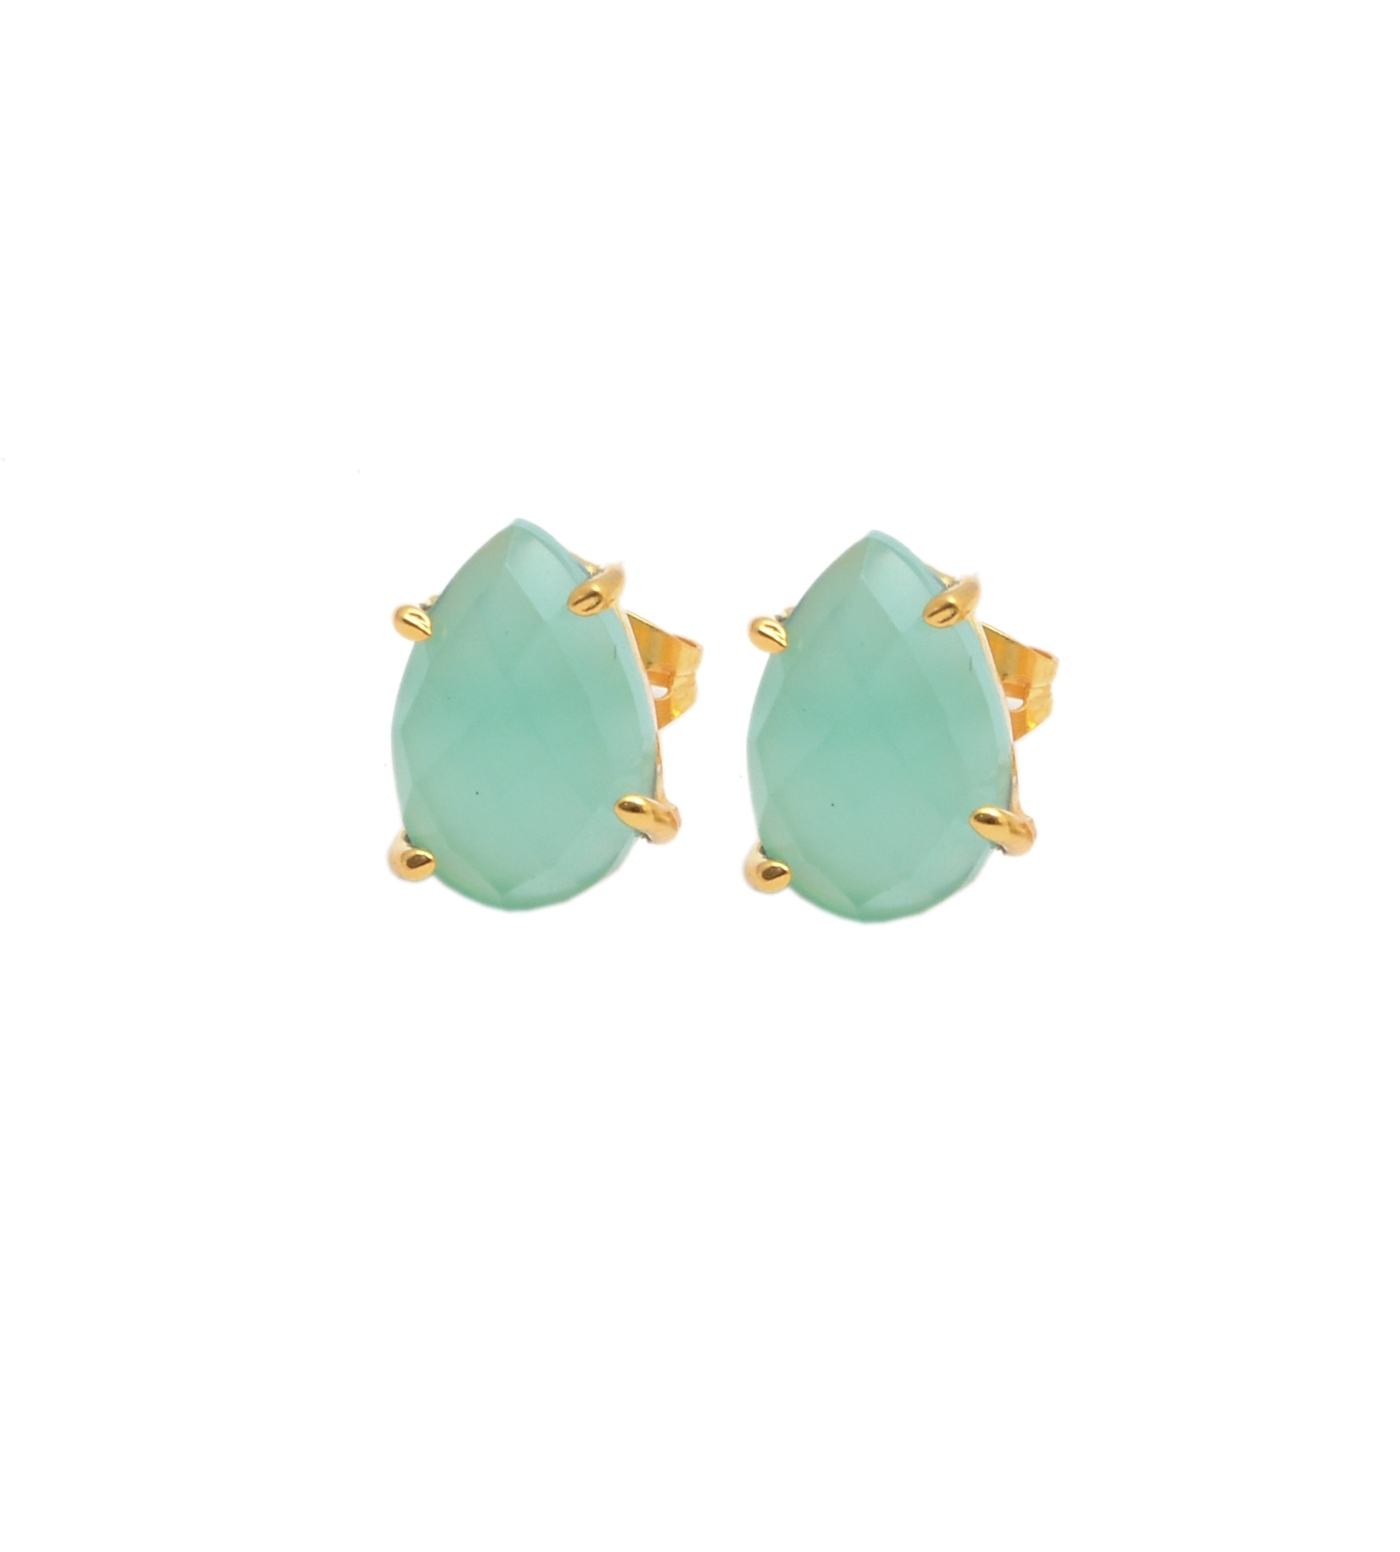 Pear Shape Gemstone Prong Stud Earring - Gold Plated Gemstone Earrings For Women